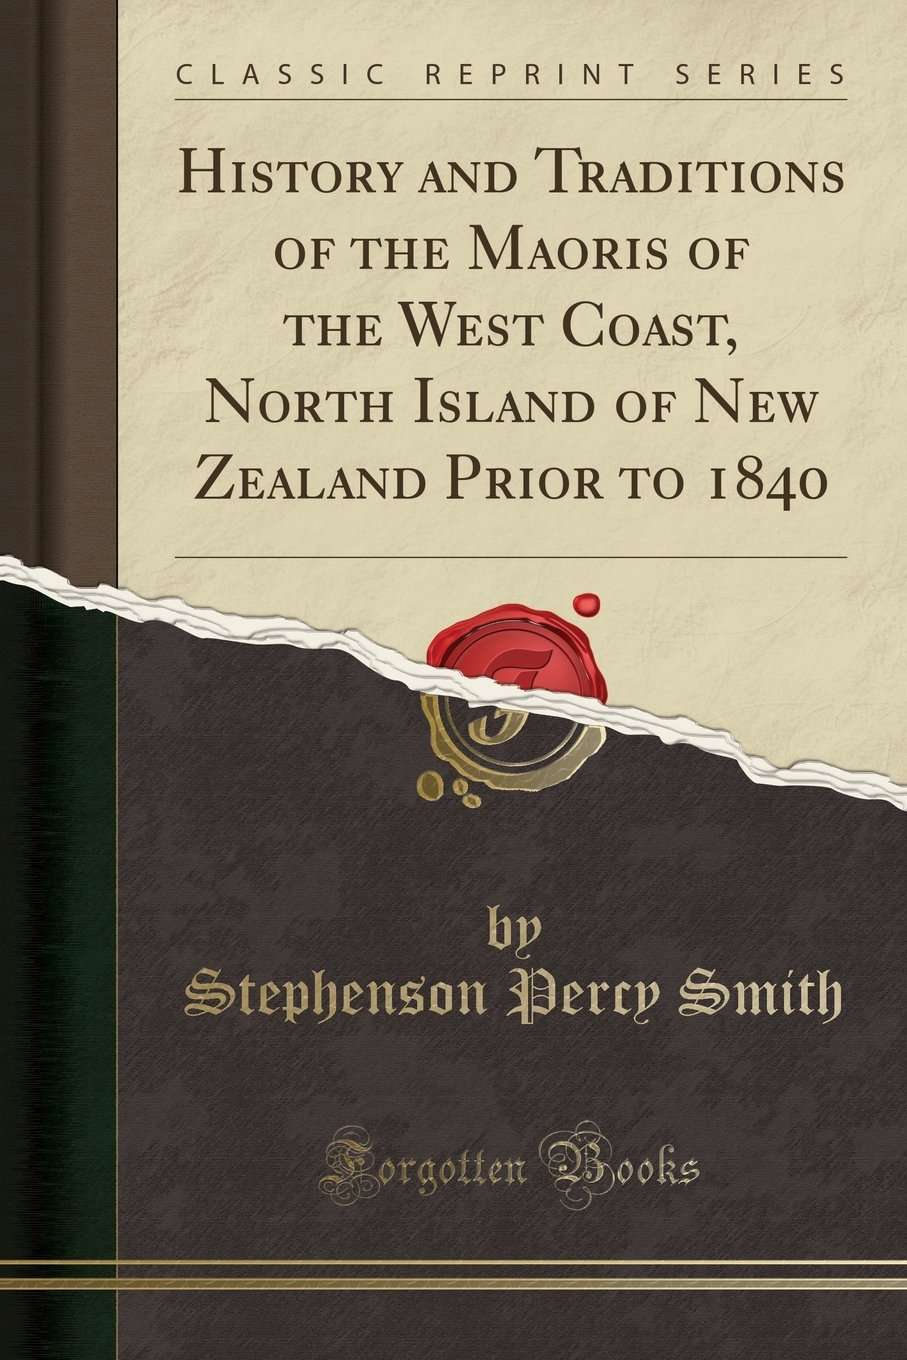 History and Traditions of the Maoris of the West Coast, North Island of New Zealand Prior to 1840 (Classic Reprint) pdf